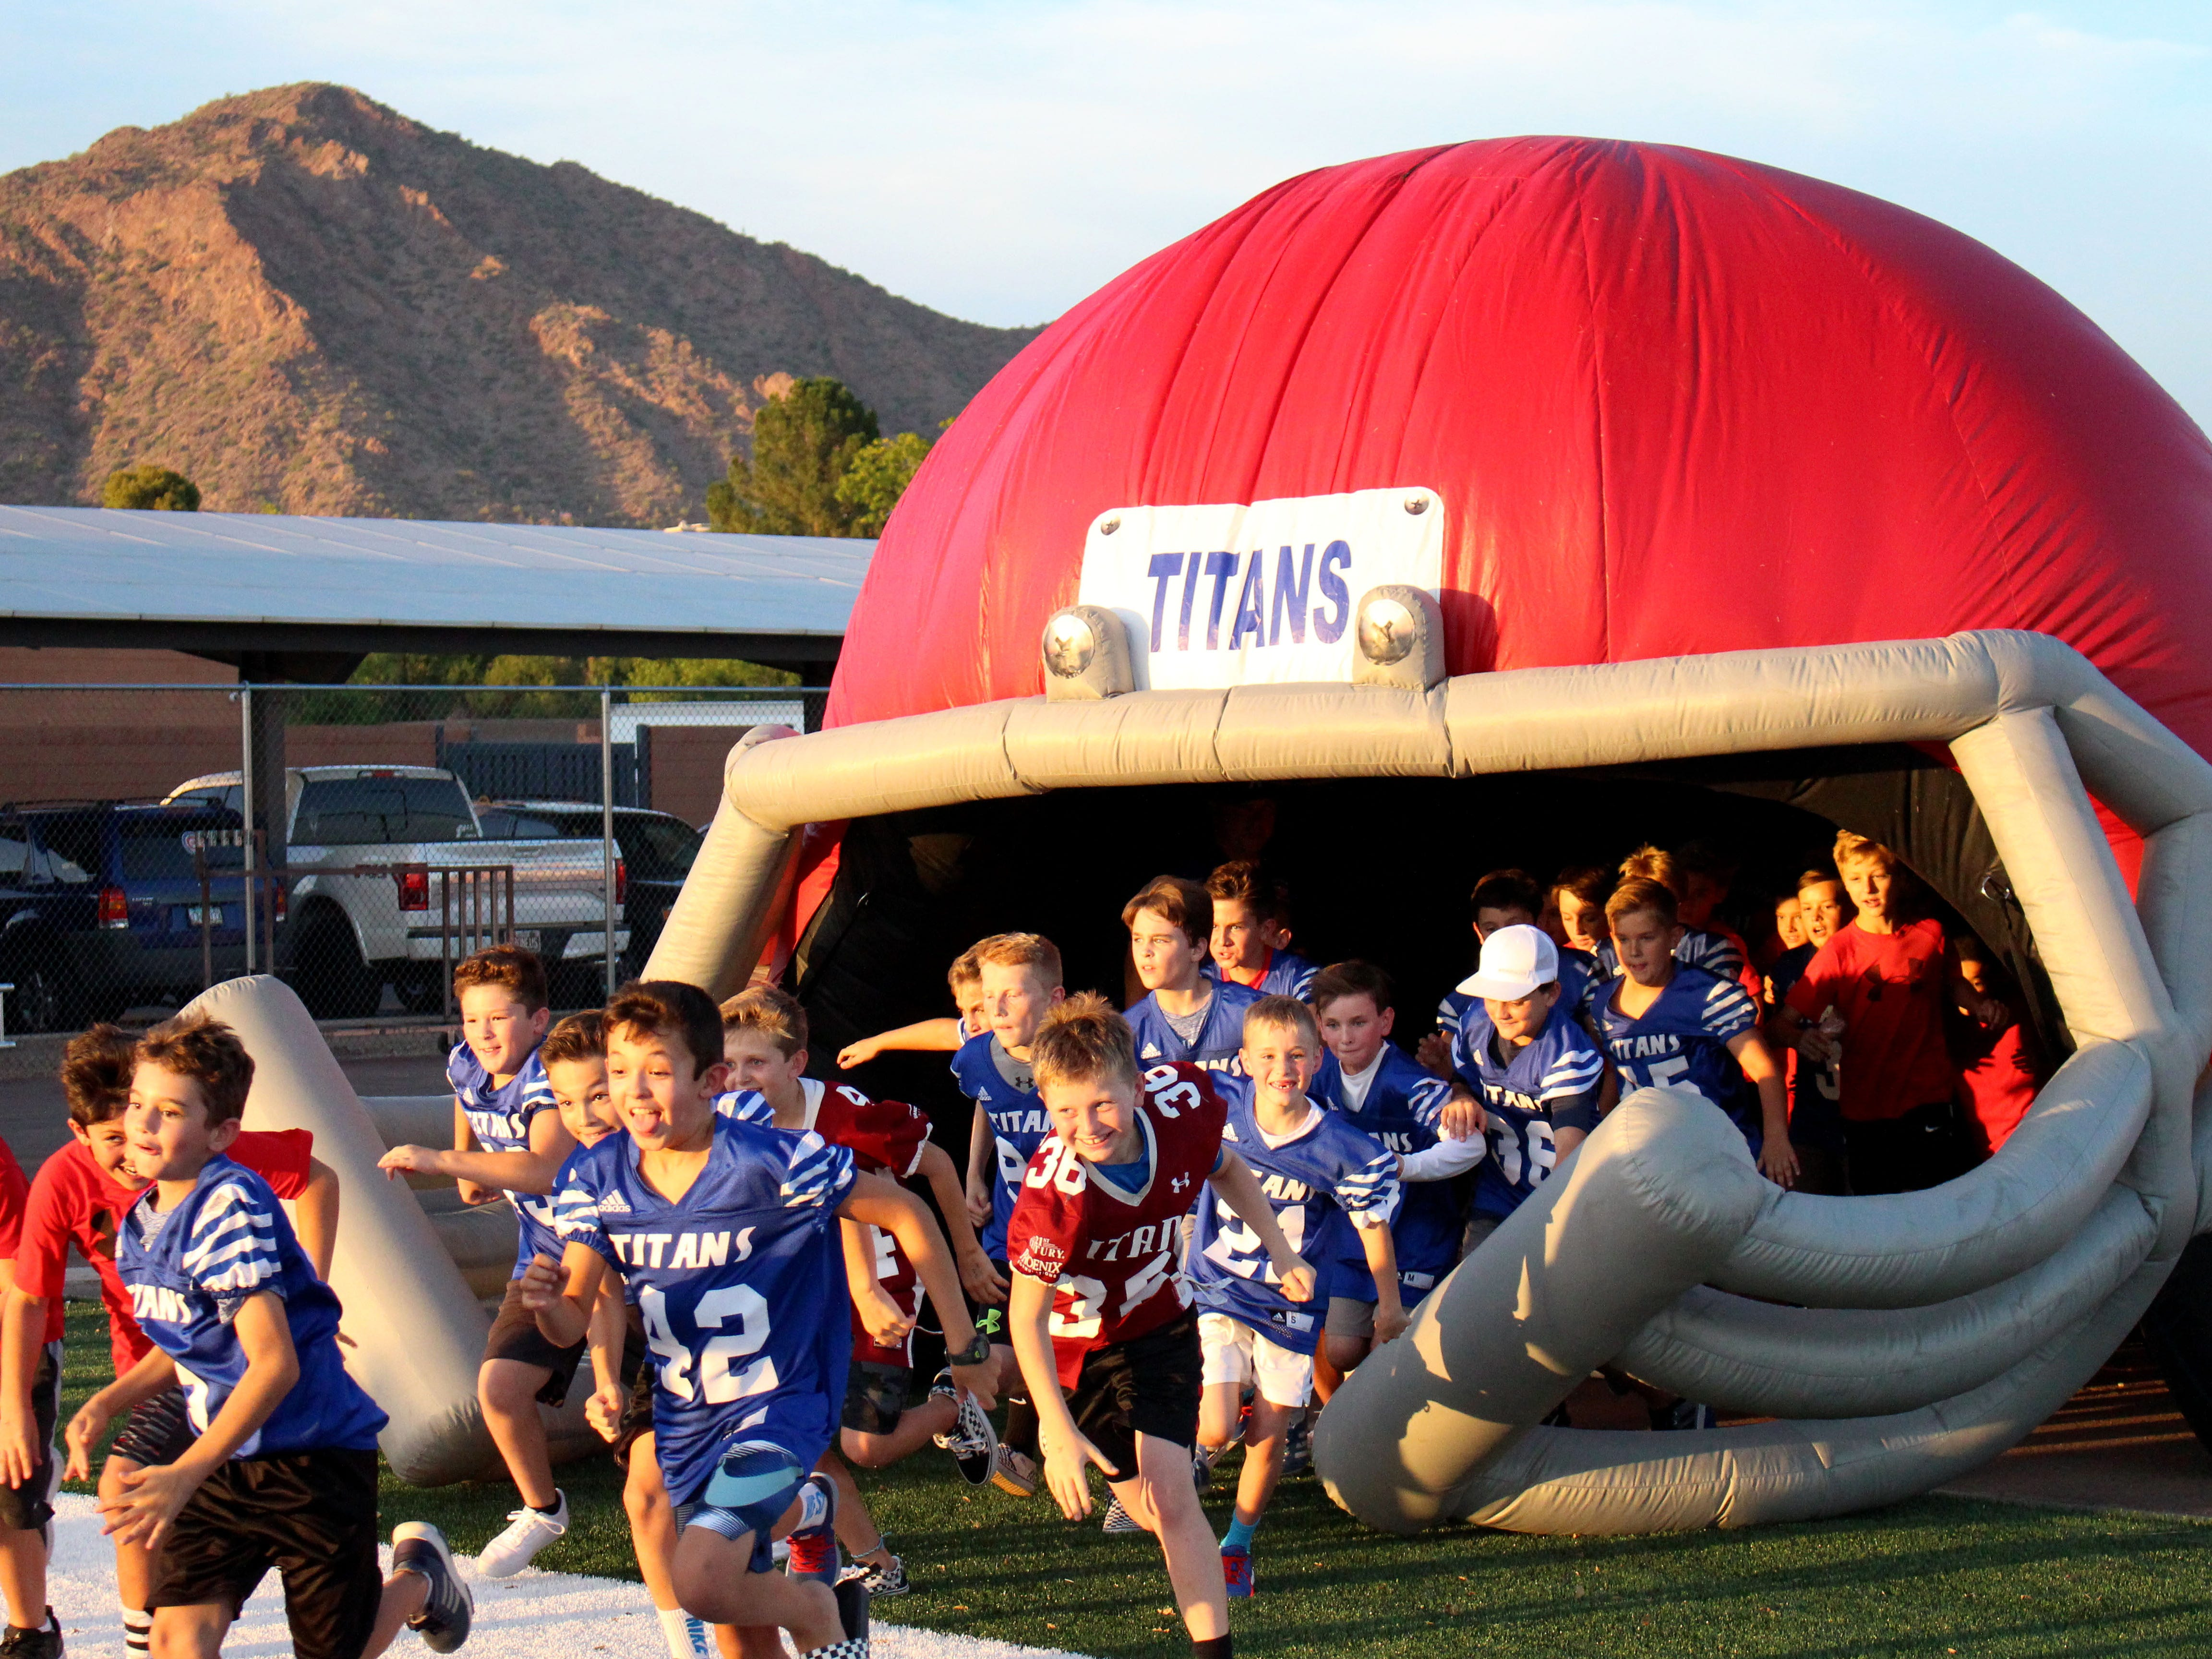 Kids run out onto the field before the Arcadia gets ready for its game against Coronado, Phoenix, Ariz. August 17, 2018.